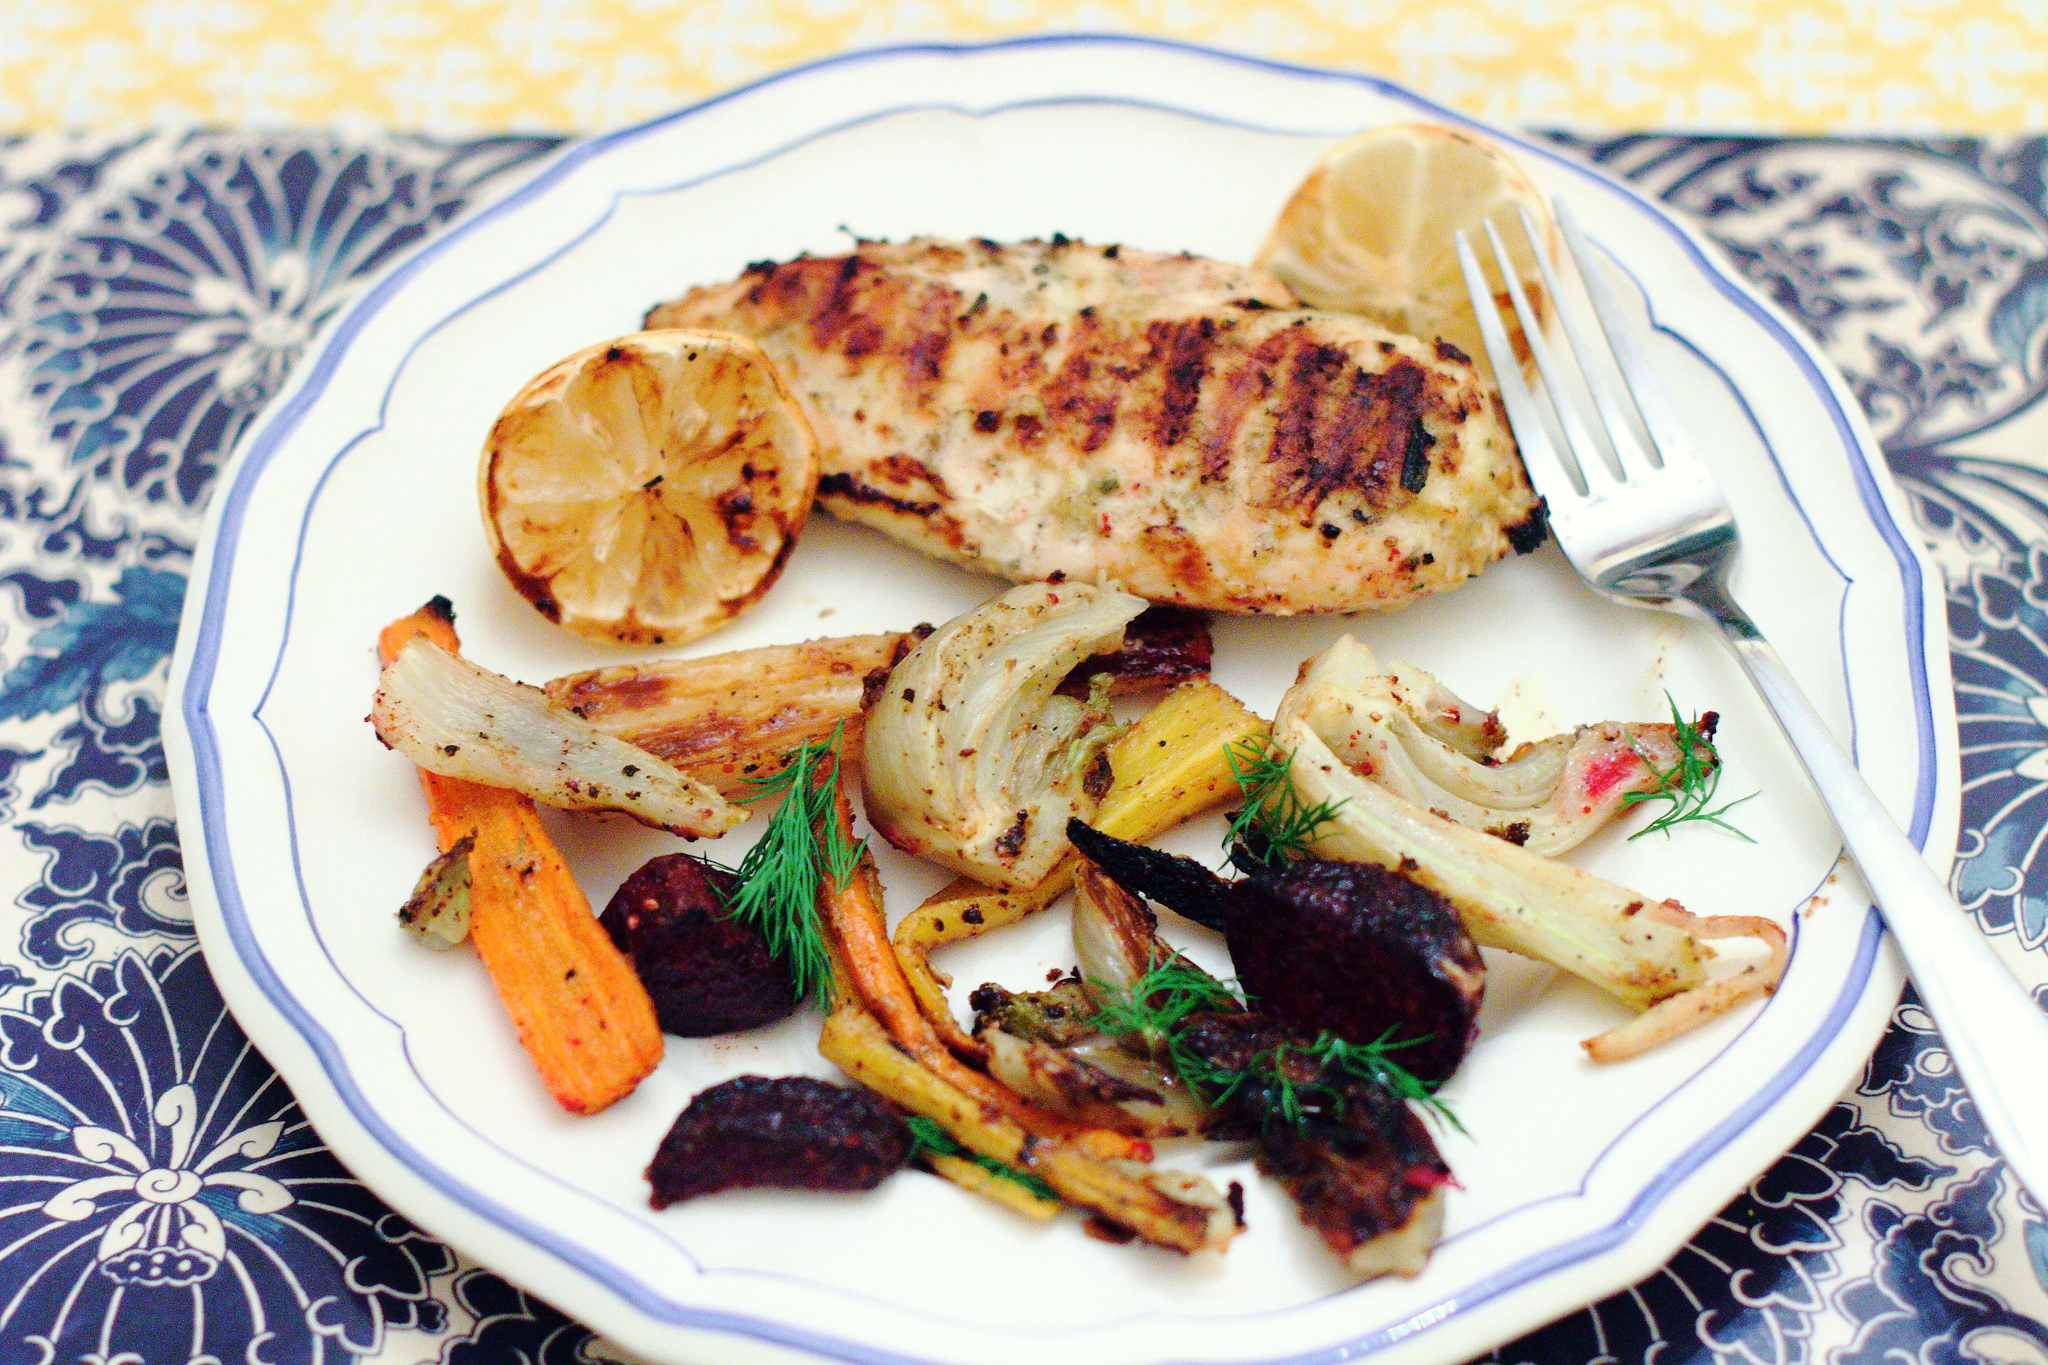 Lemon Chicken and Caramelized Vegetables with Dijon Butter